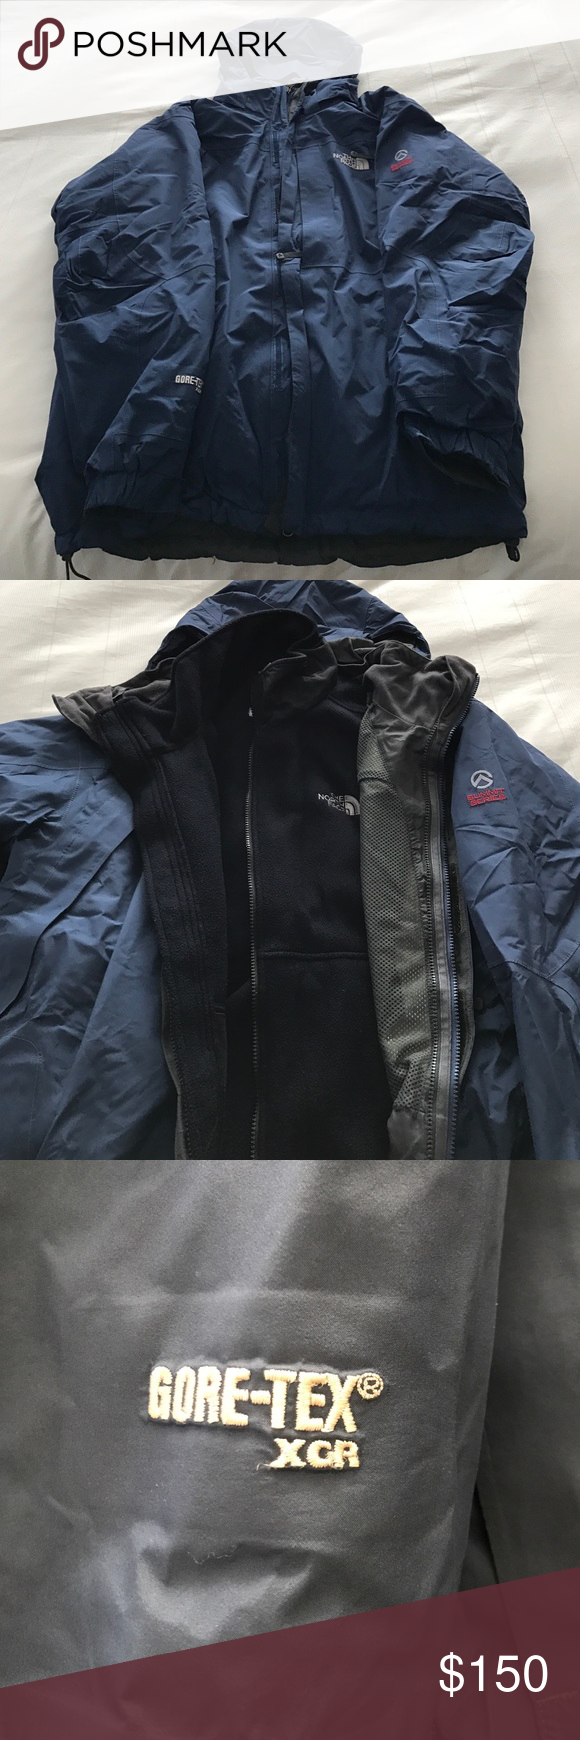 Blue The North Face Summit Series 2 In 1 Jacket Summit Series The North Face Jackets [ 1740 x 580 Pixel ]